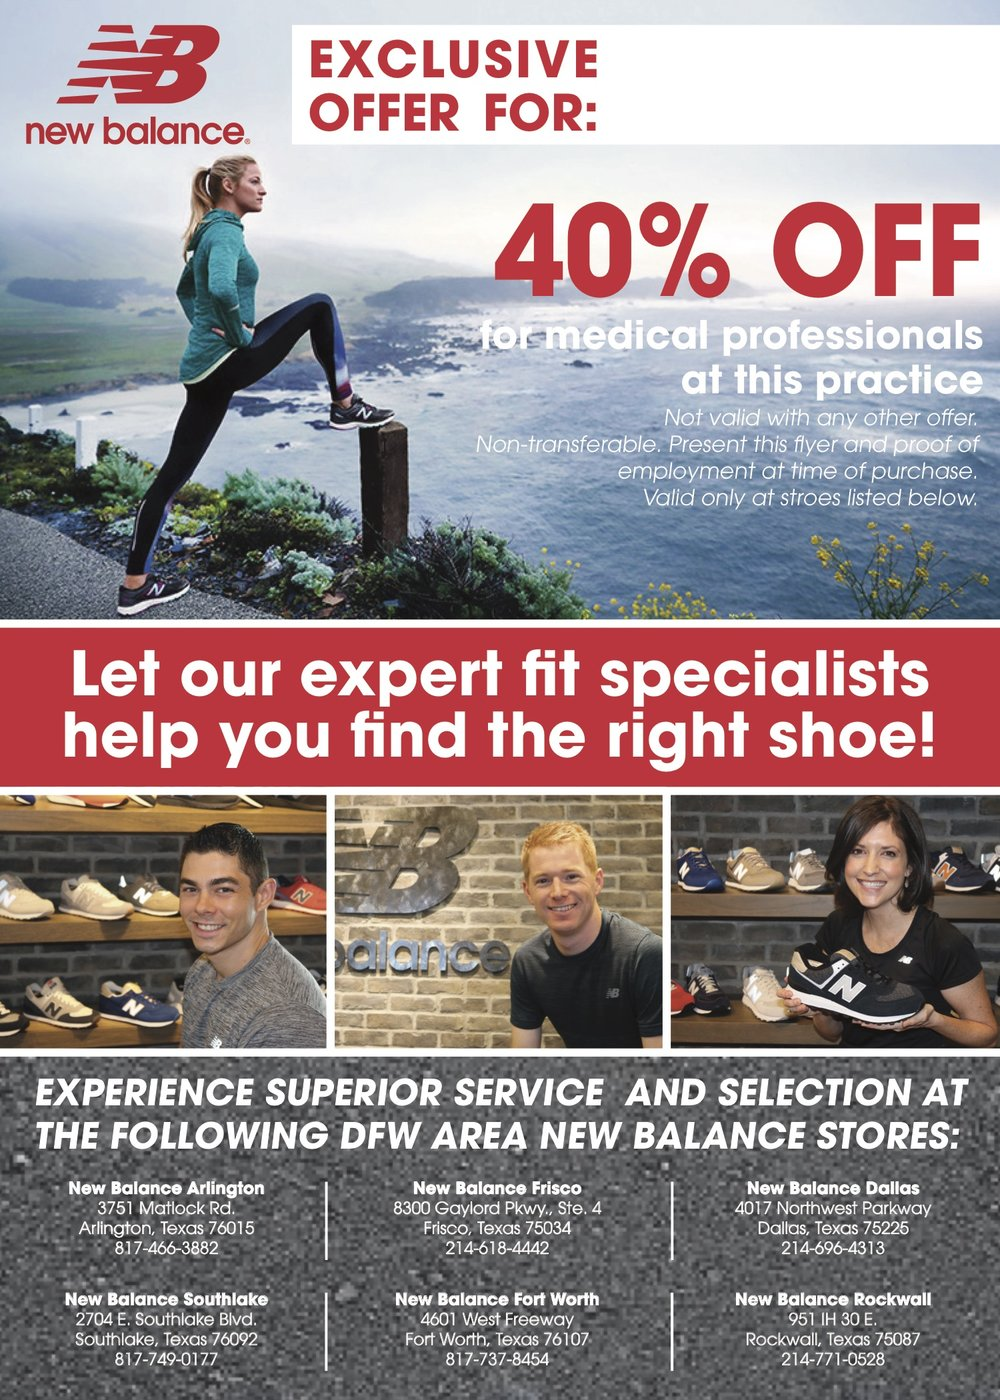 new balance medical offer flyer copy 2.jpg